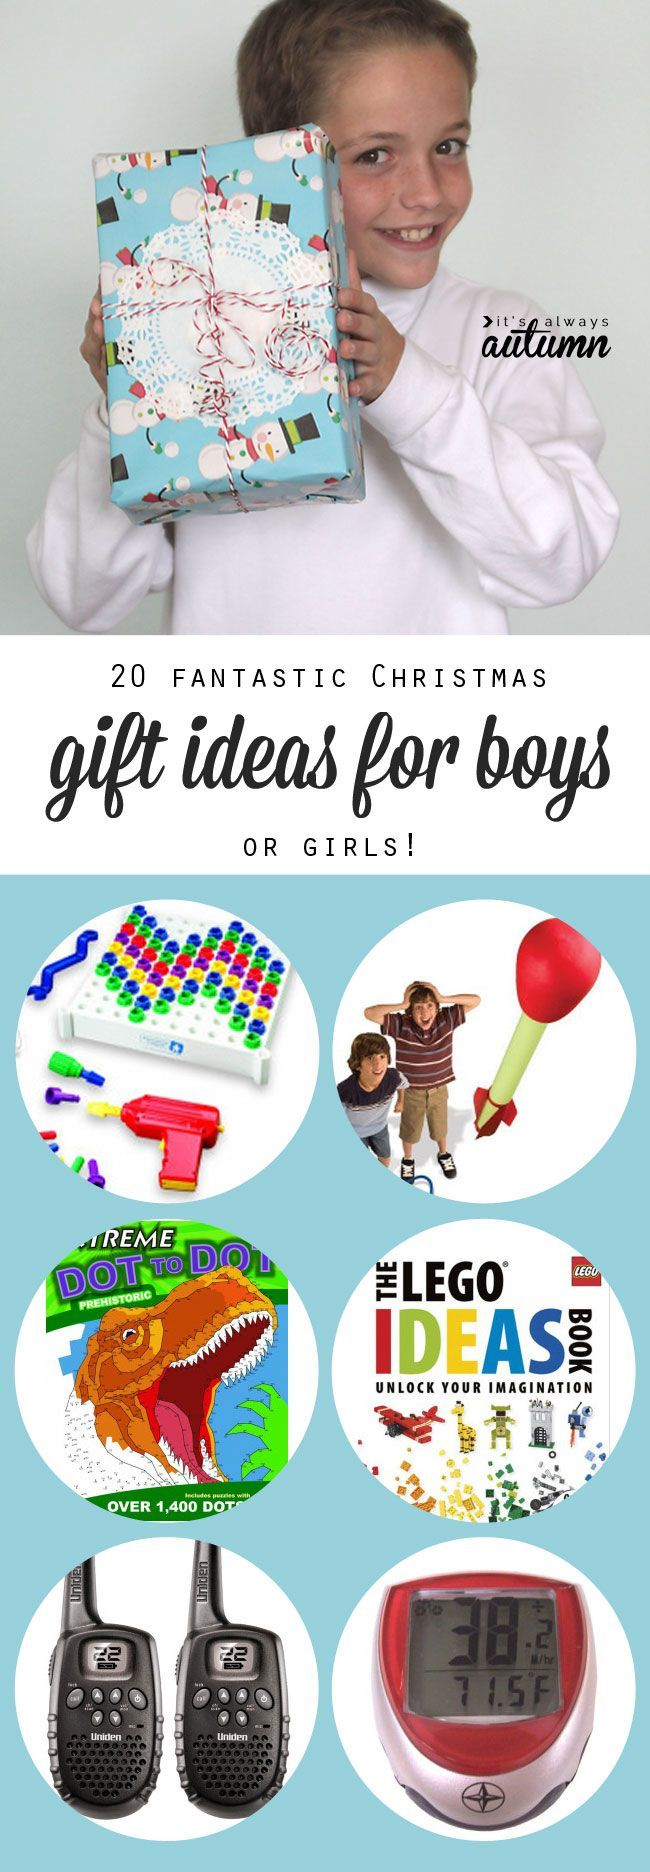 stop wasting money on presents that get ignored or broken! check out the 20 best Christmas gift ideas for boys - these ideas work for girls too!